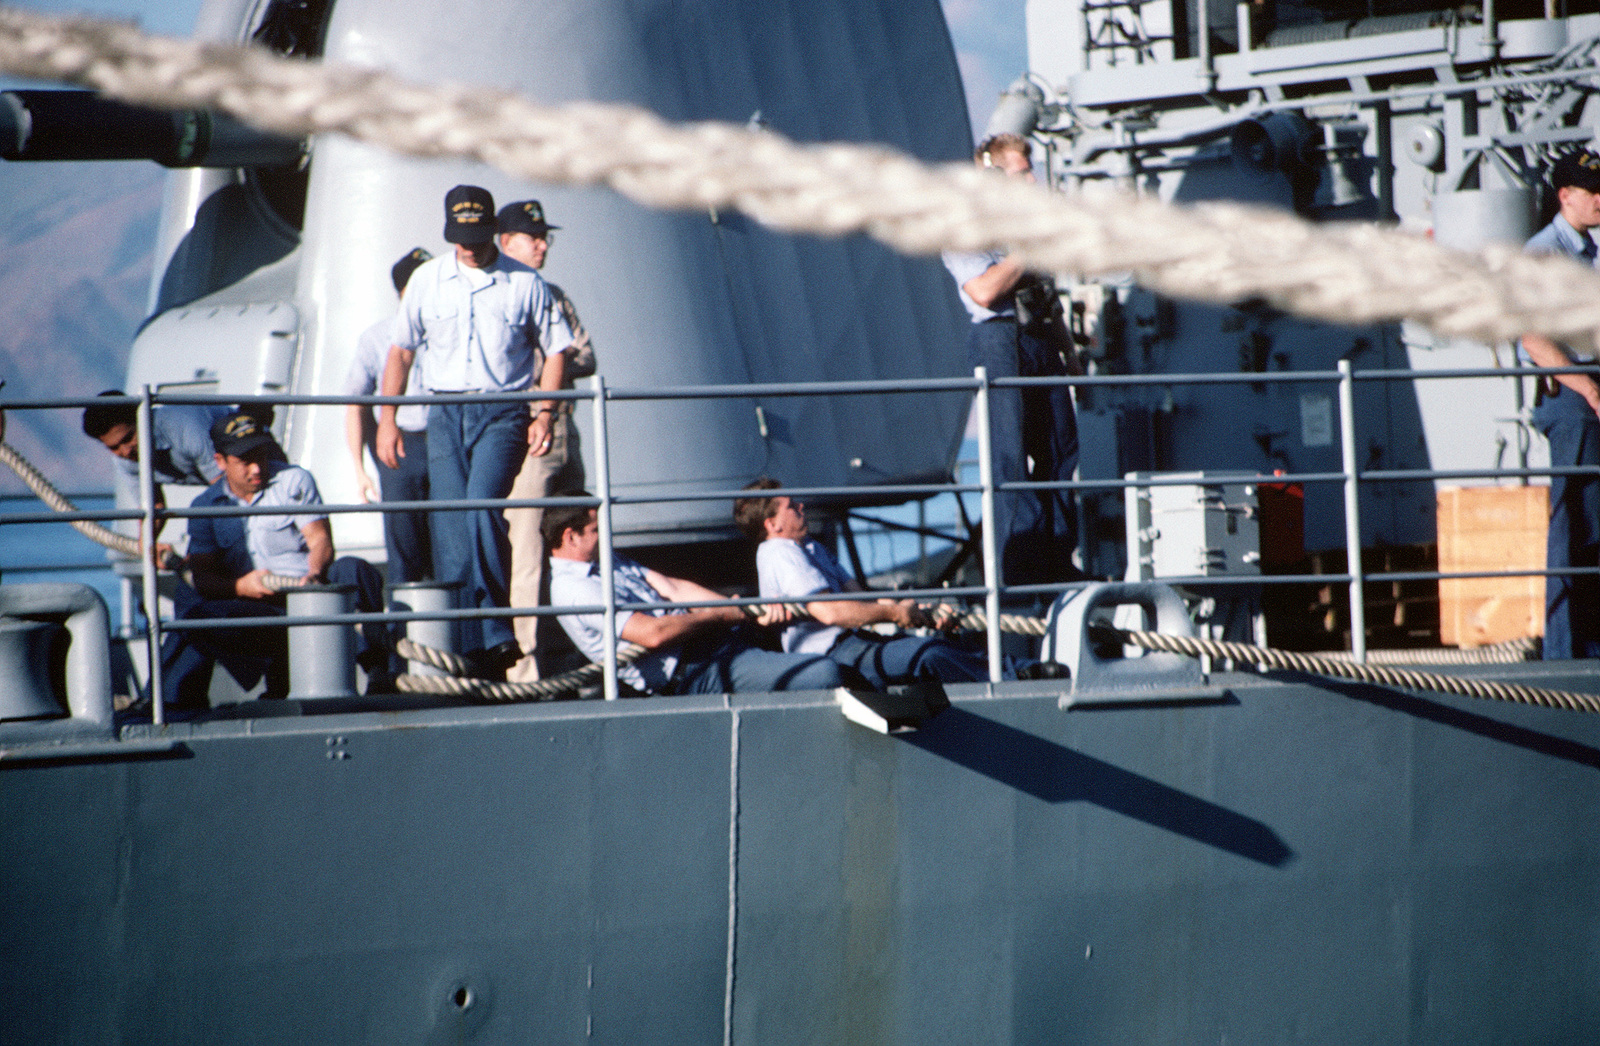 Sailors aboard the destroyer USS HEWITT (DD 966) haul in on a line as the ship is tied up alongside another vessel